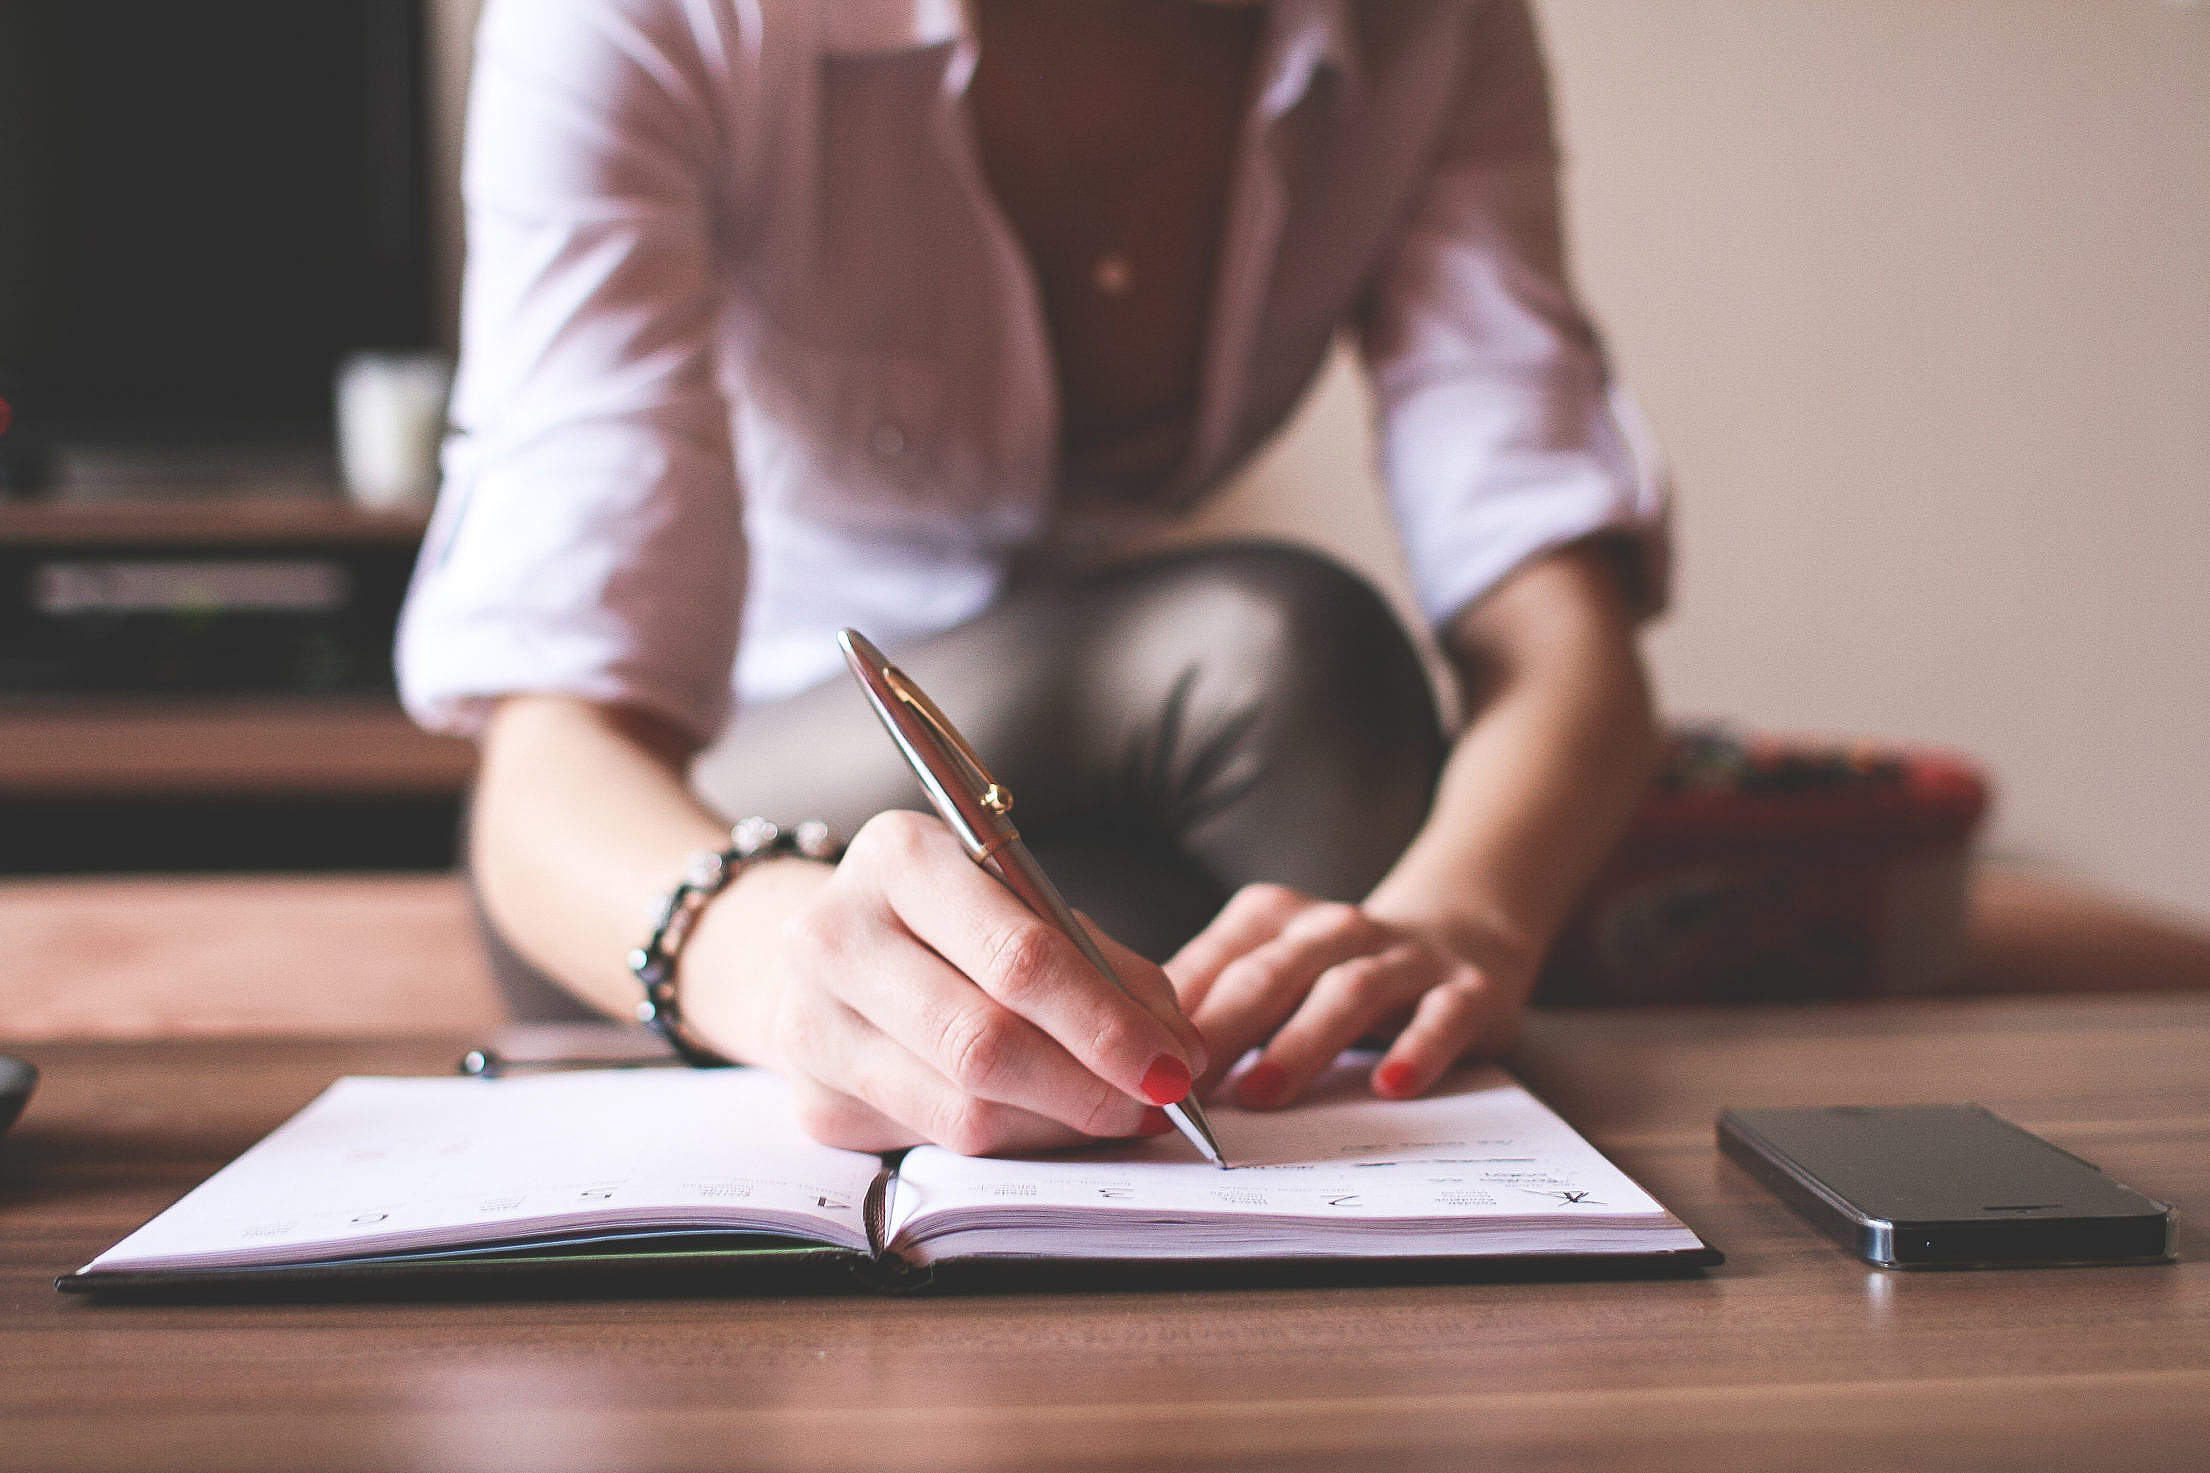 Writing about past failures may boost future performance by reducing stress.